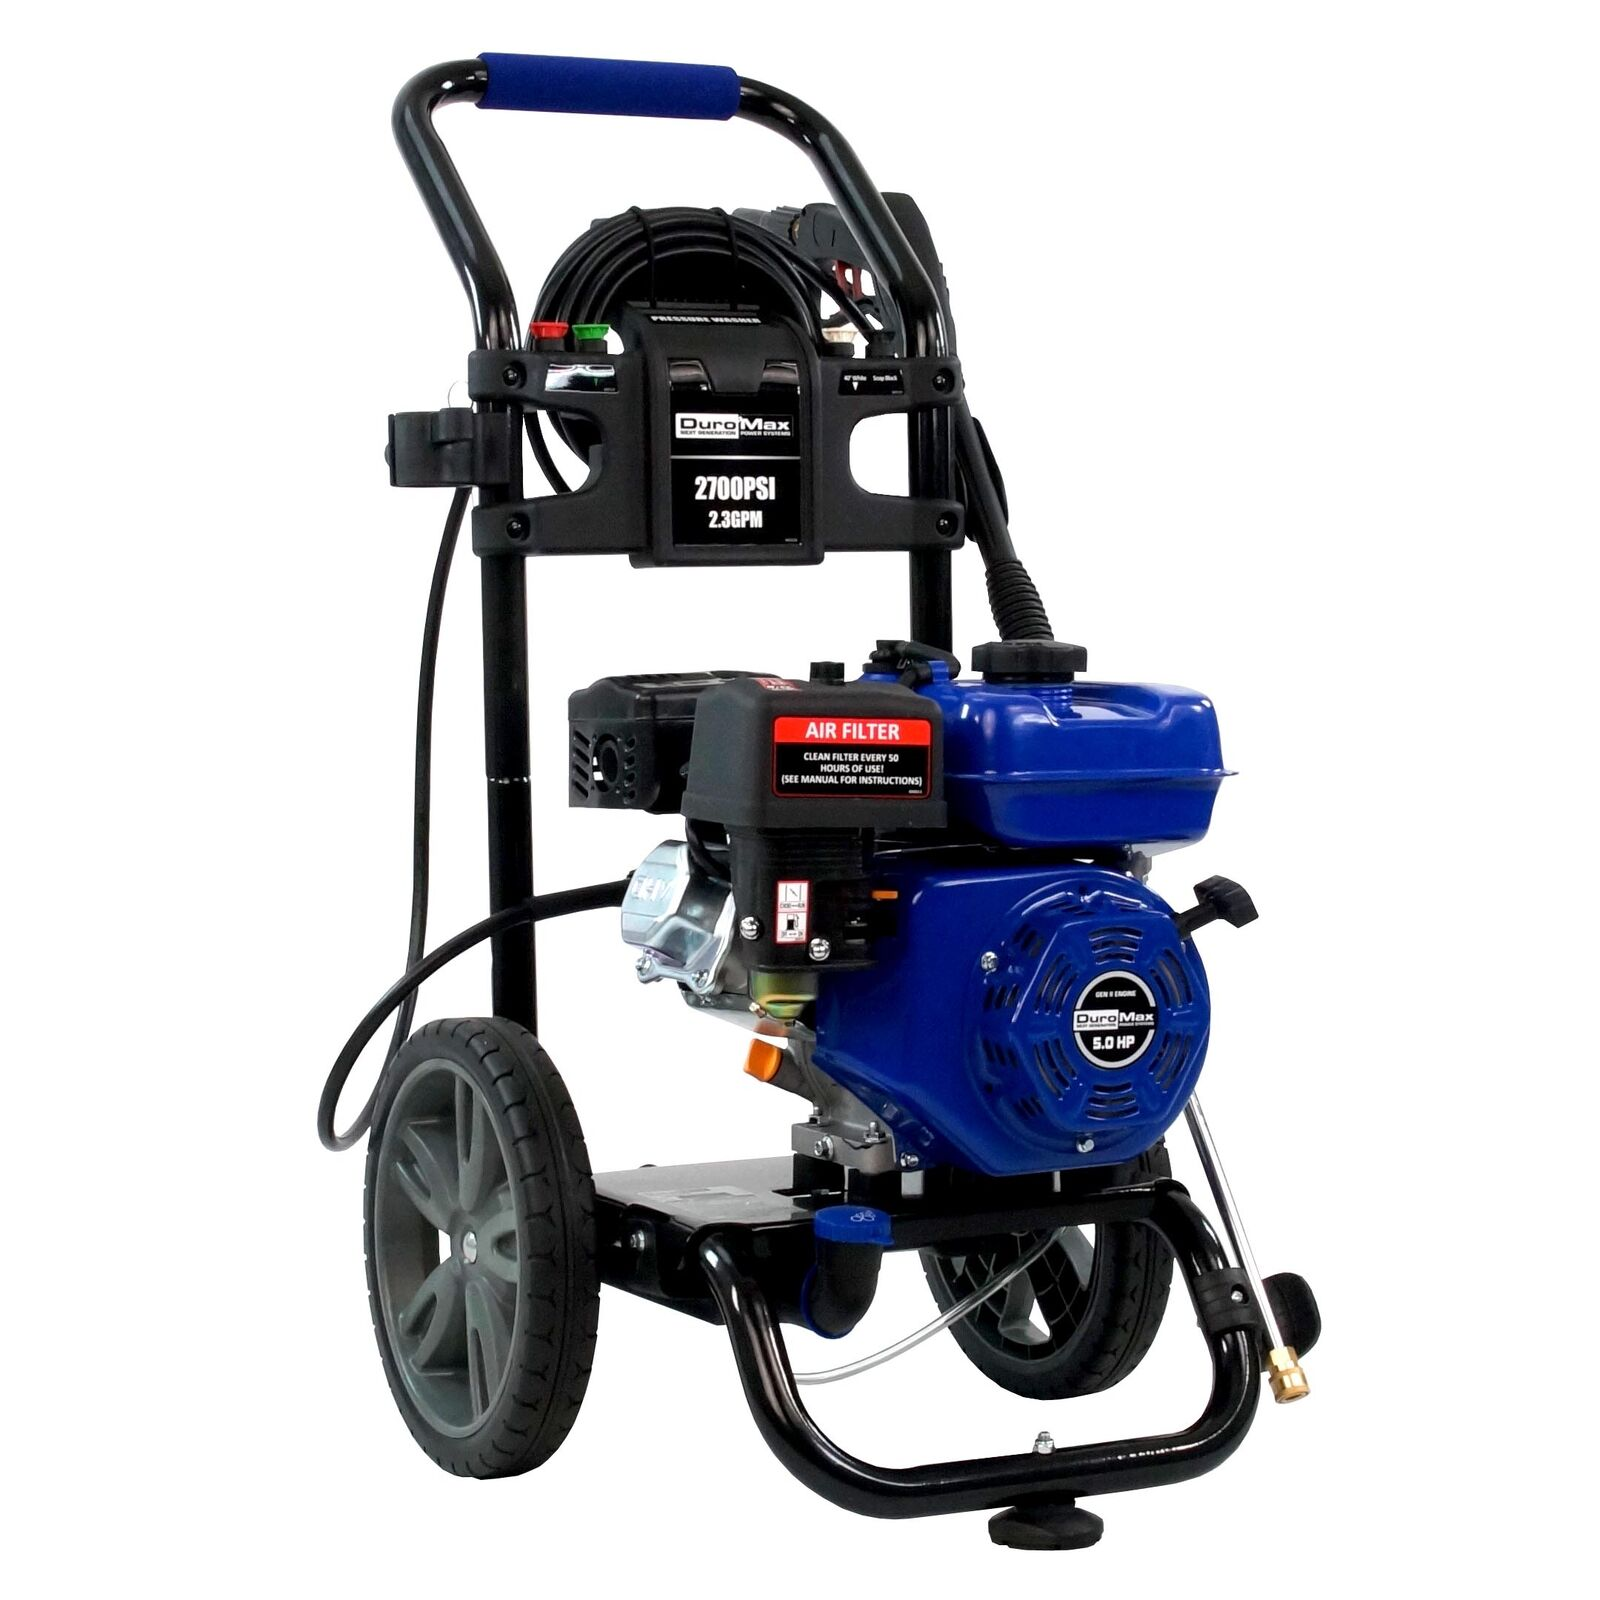 DuroMax XP2700PWS 2,700 PSI 2.3 GPM Gas Powered Cold Water Power Pressure  Washer 1 of 8FREE Shipping See More